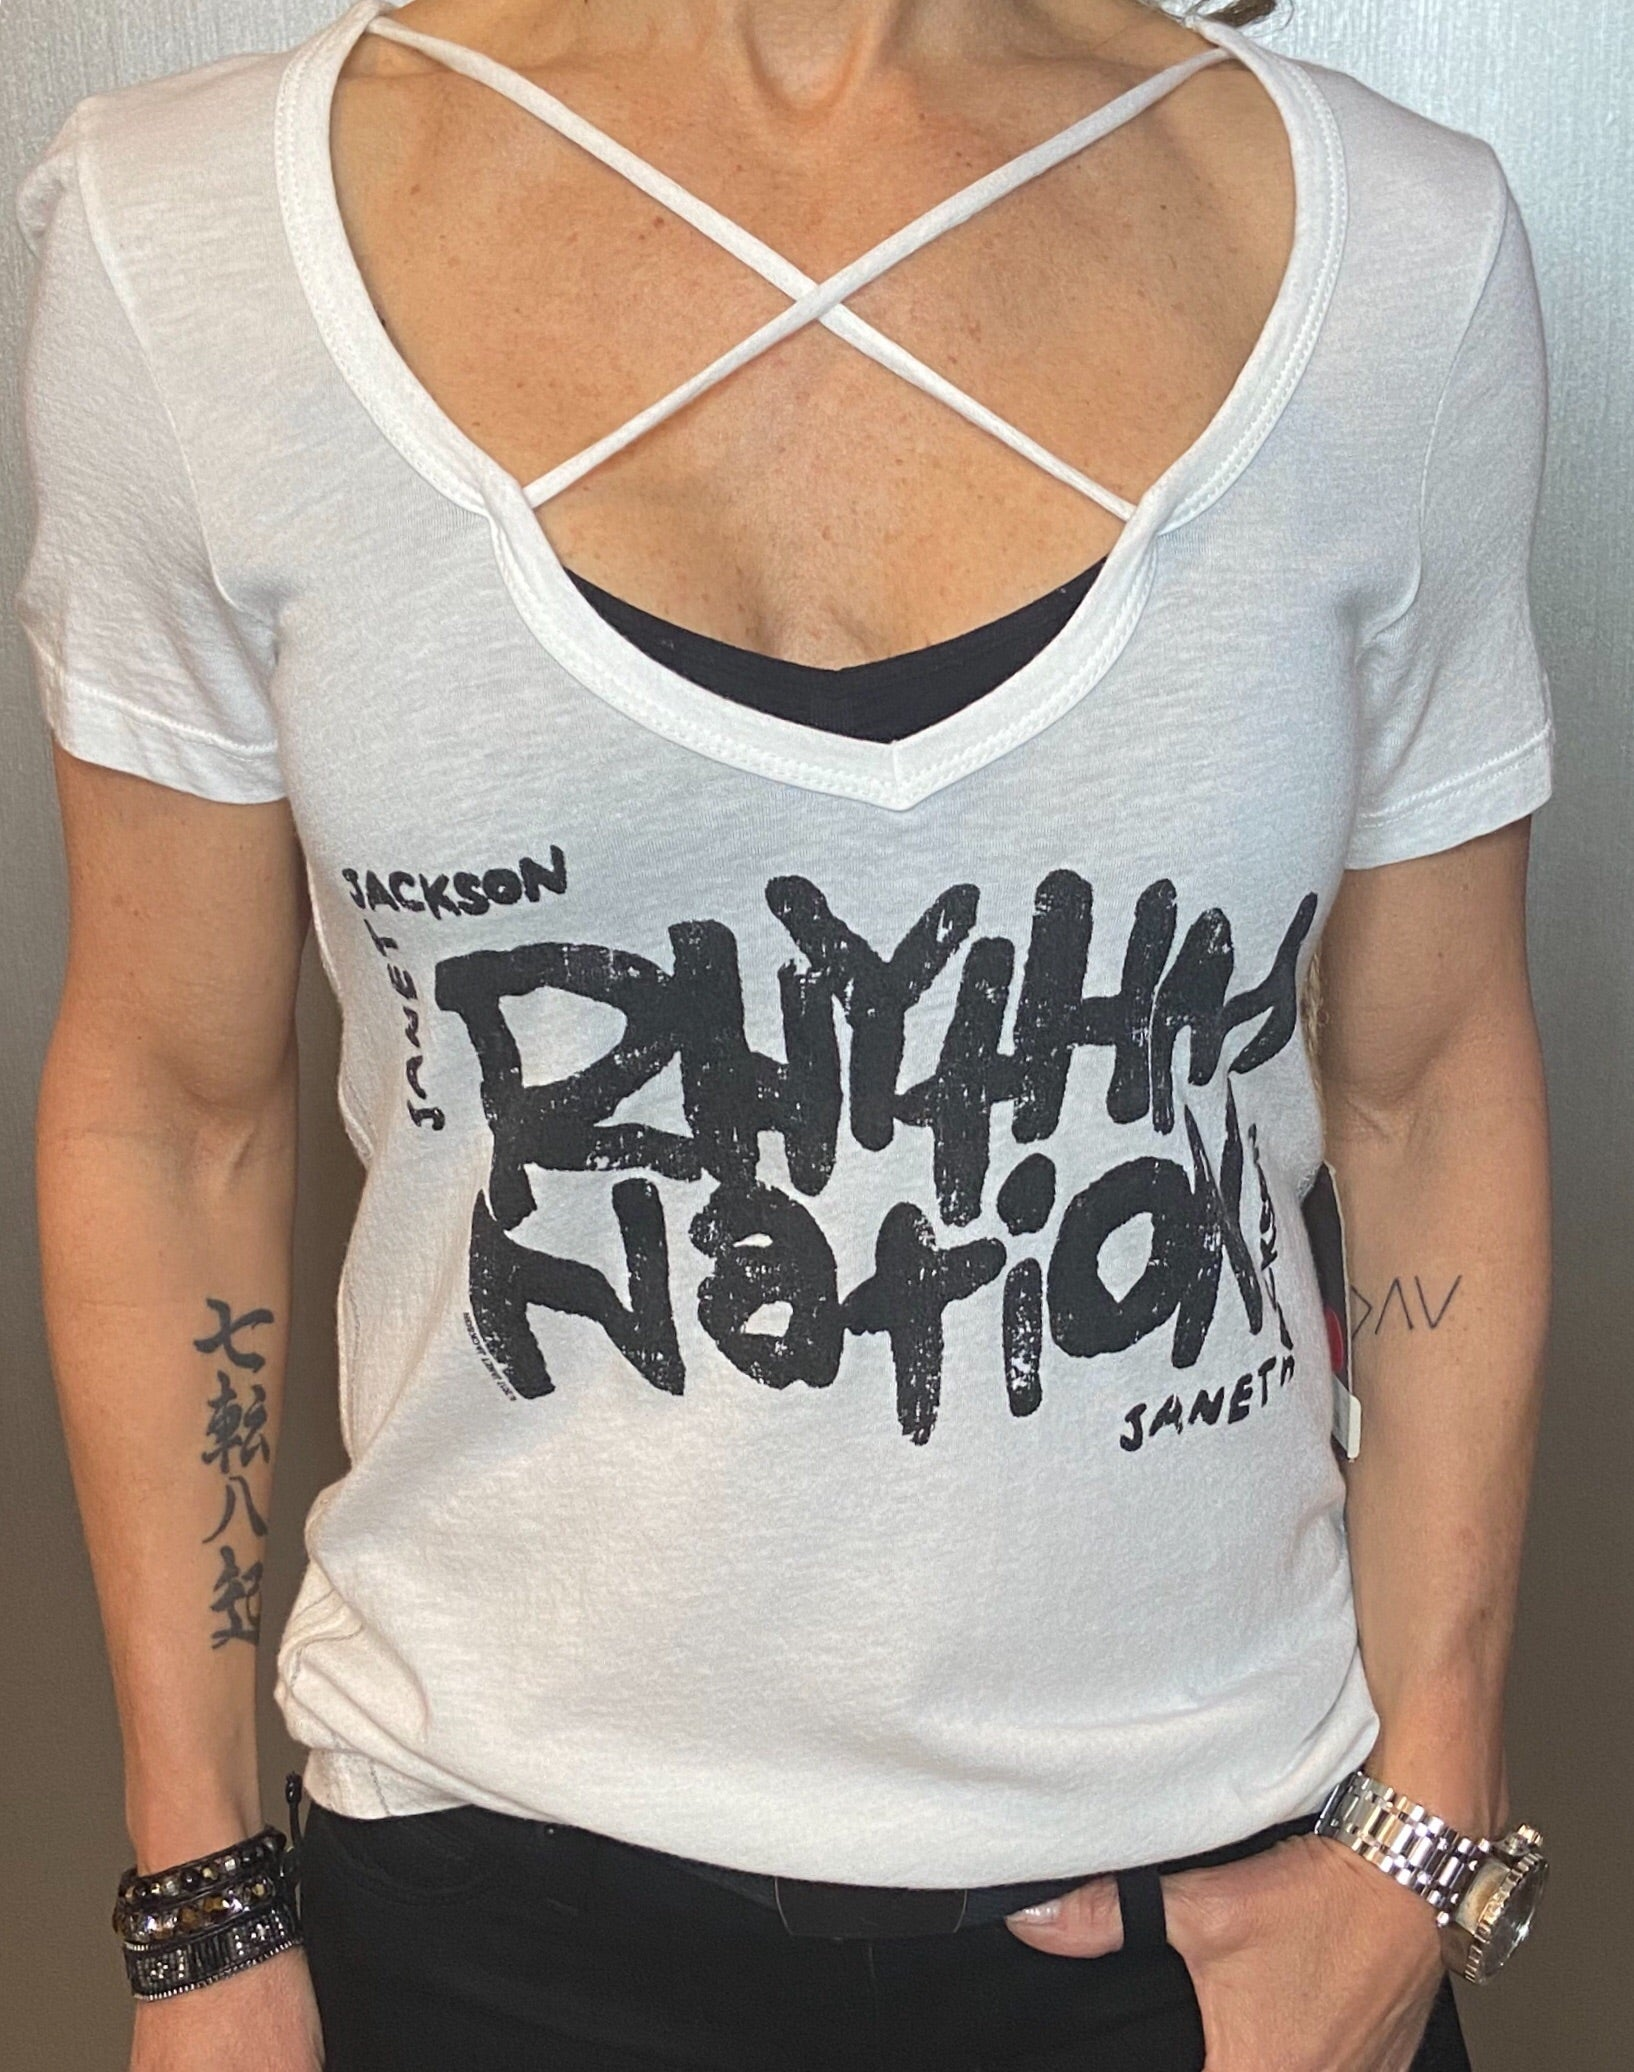 Rhythm nation graphic tee